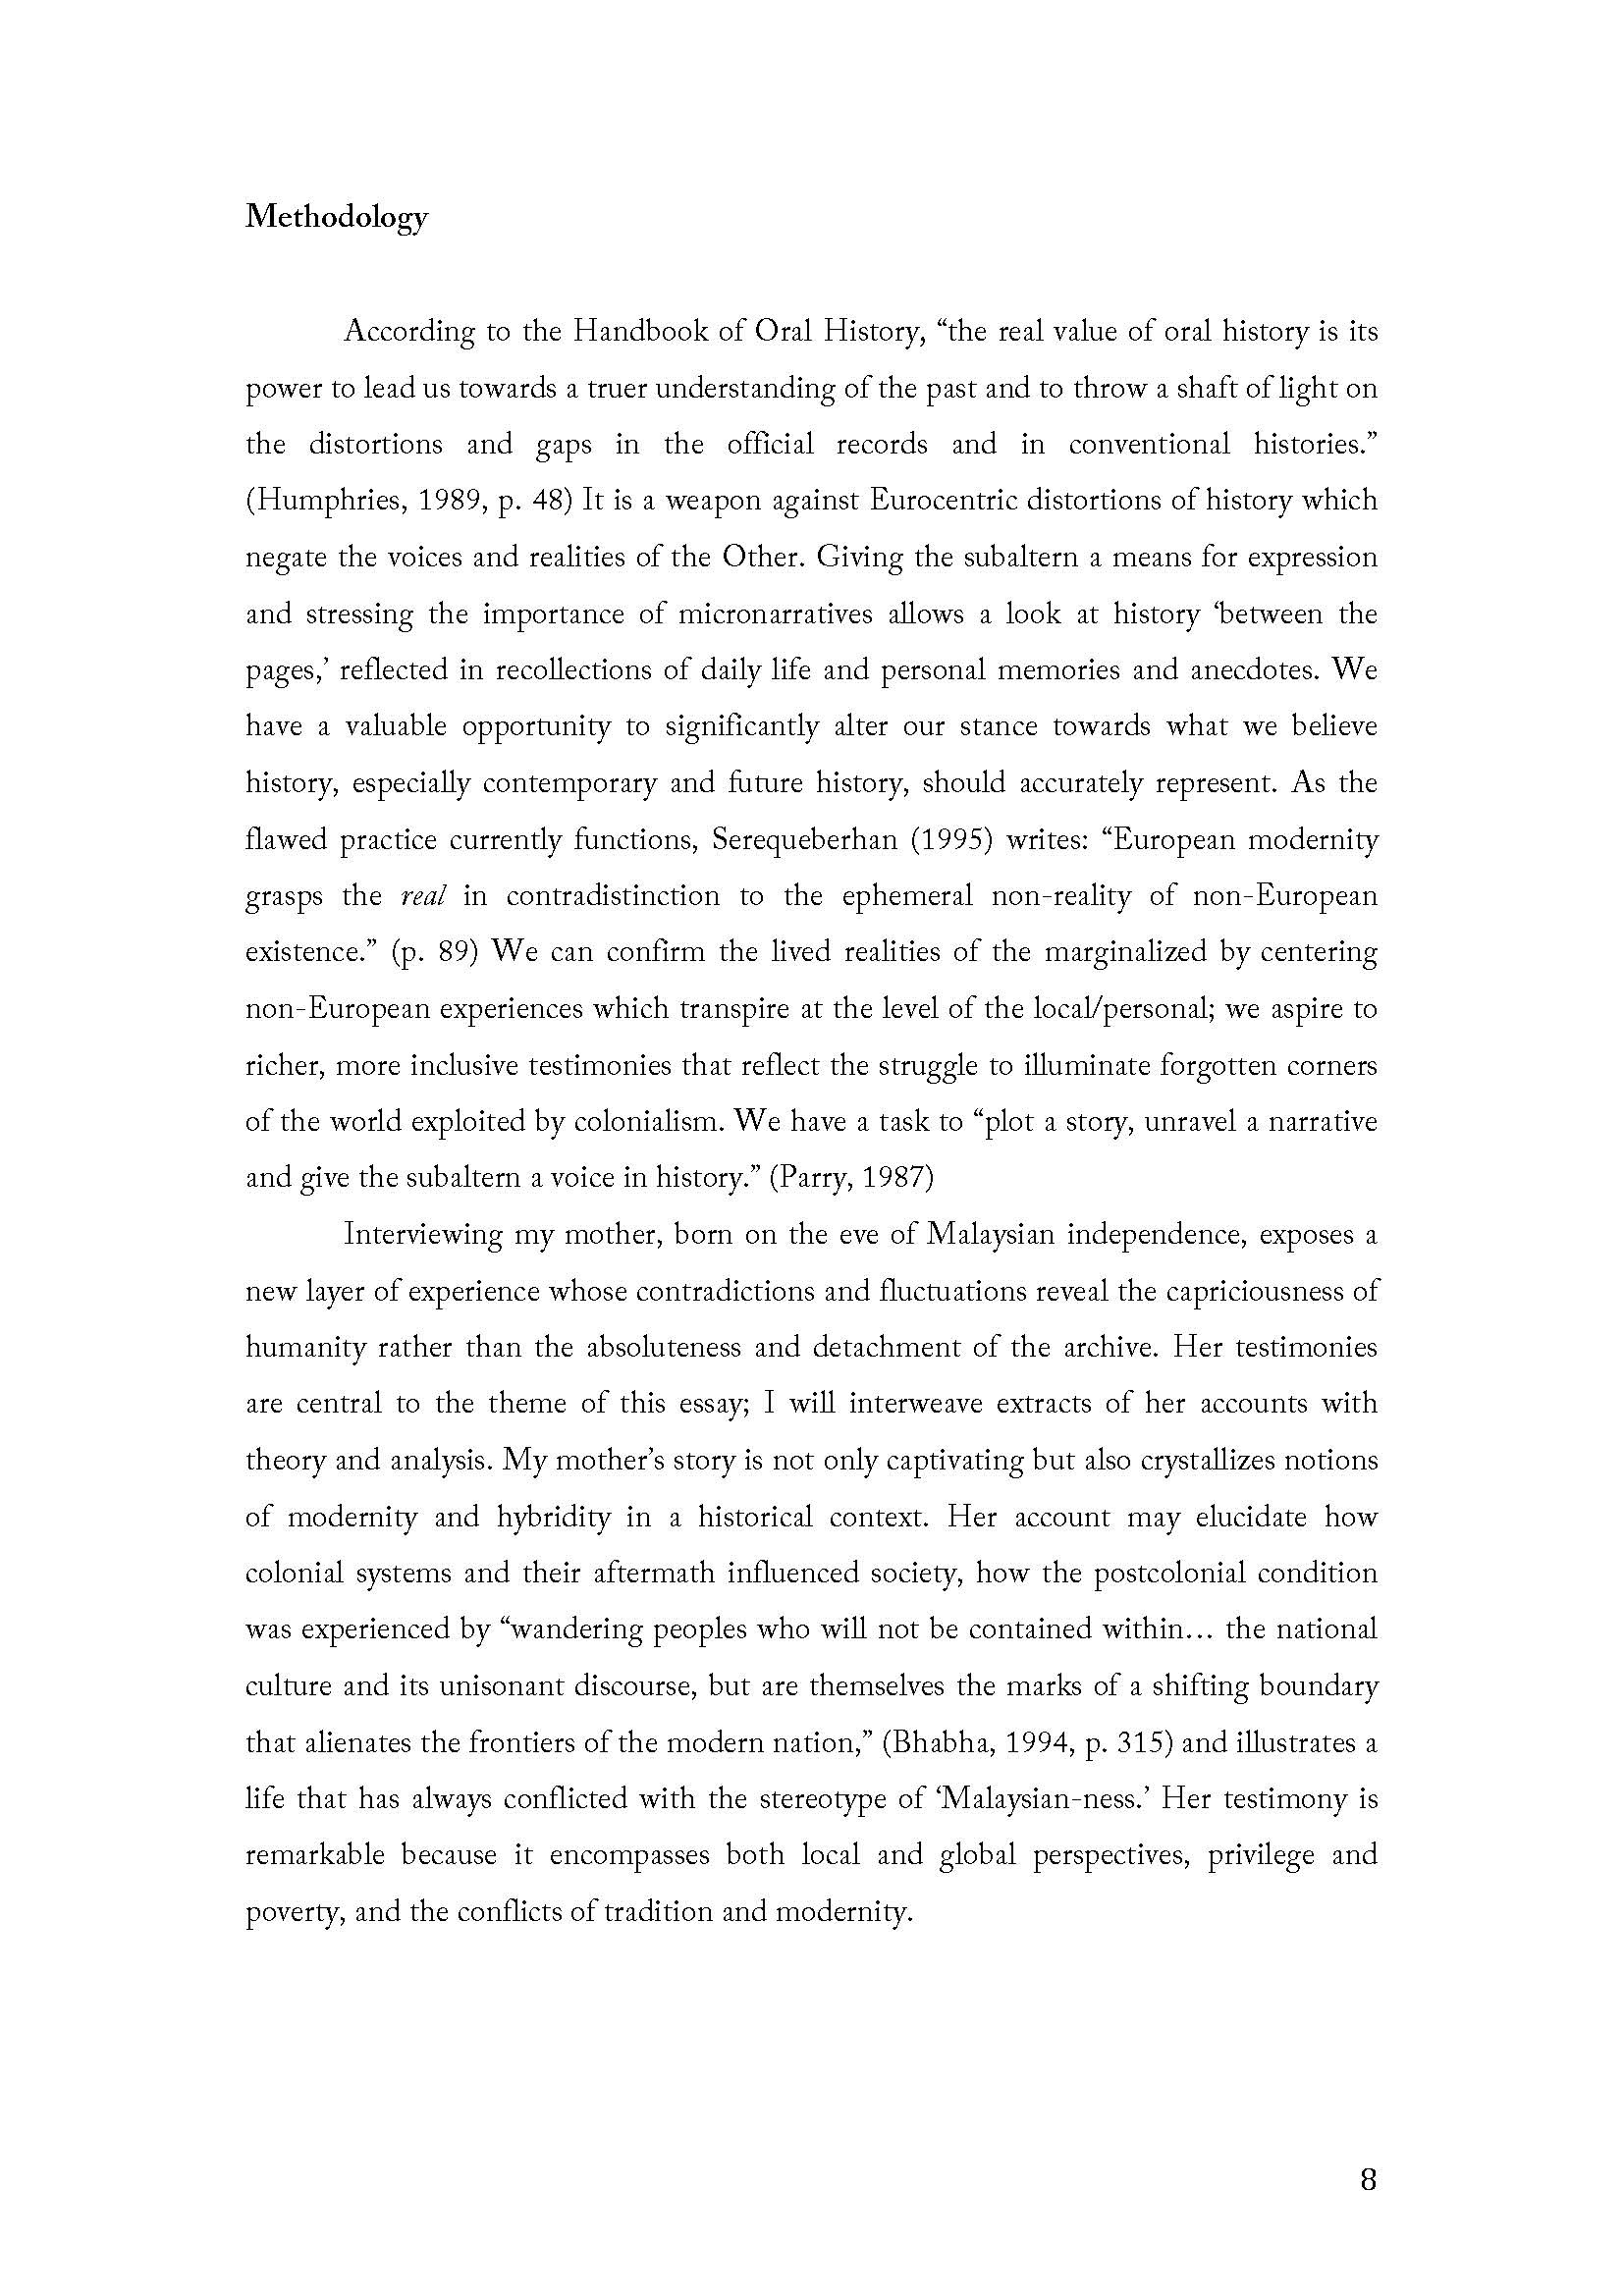 dissertationdraft2quoted_Page_08_1654